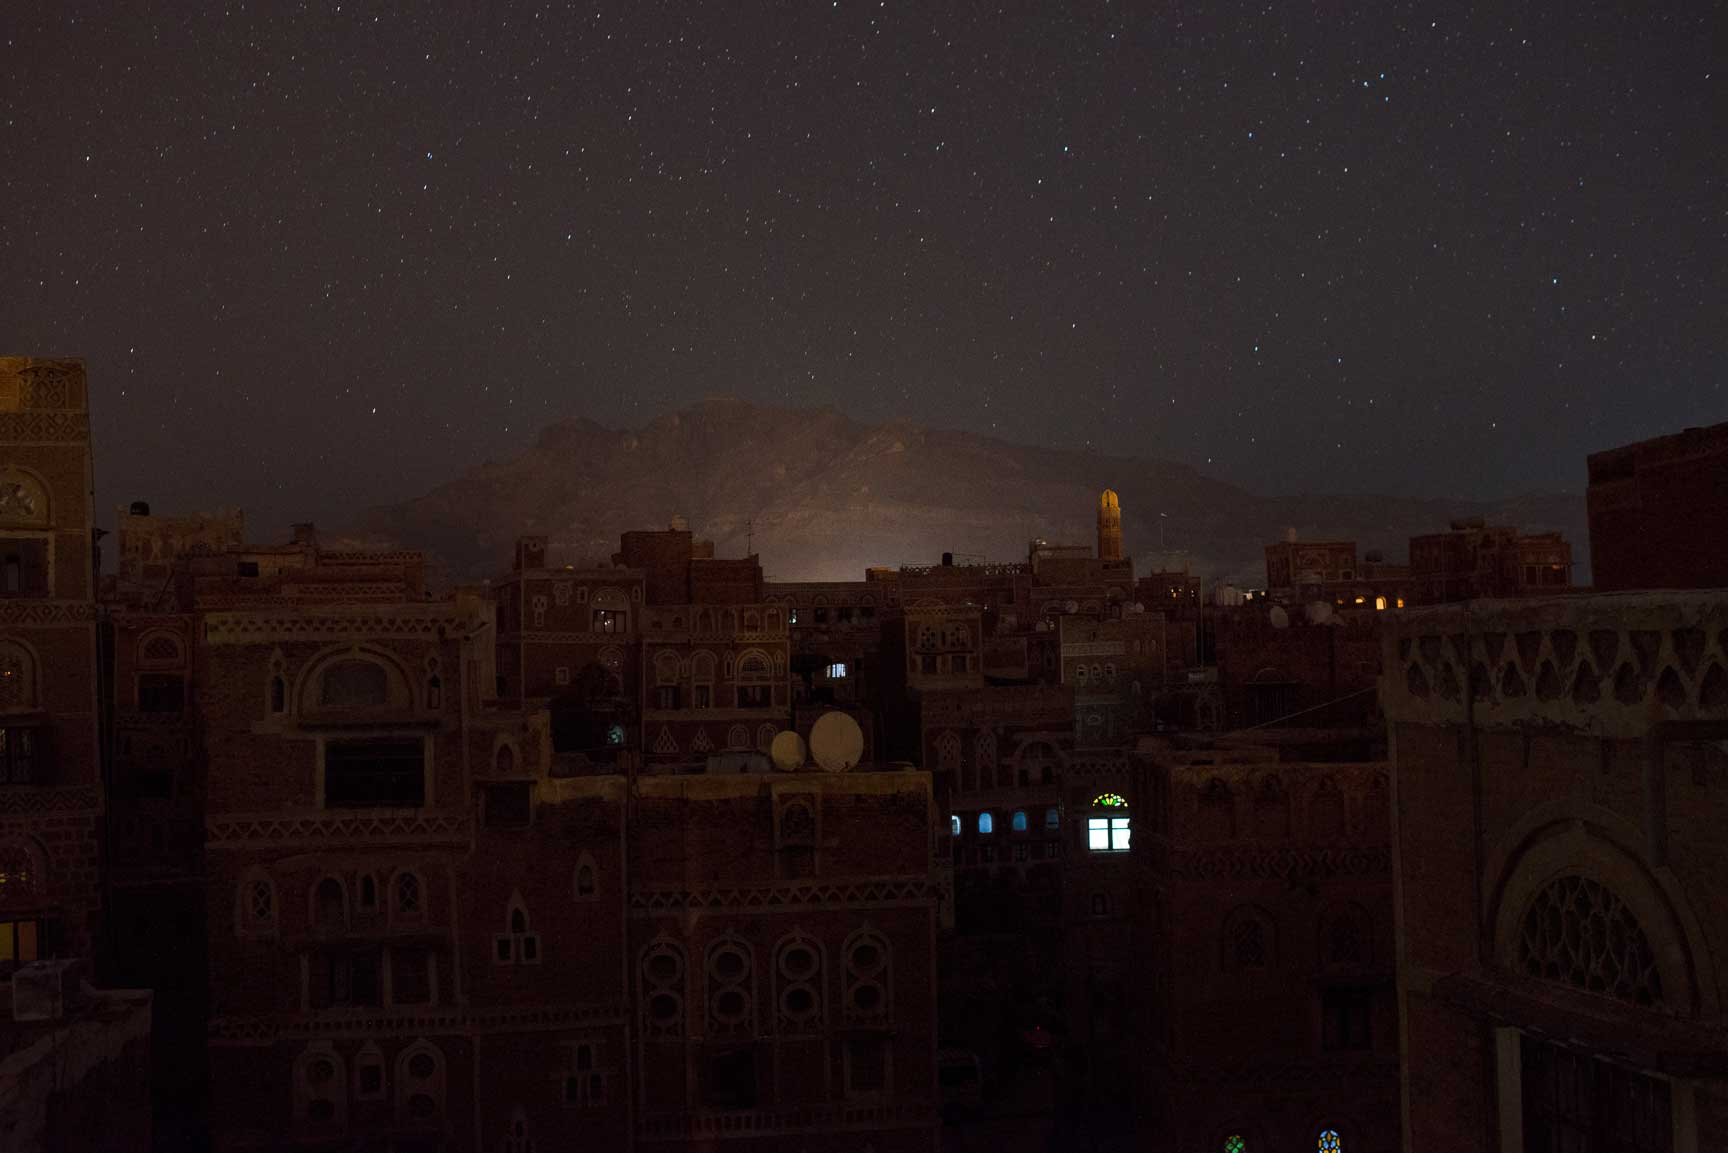 Stars shine above the Old City on Saturday, May 23, 2015 in Sana'a, Yemen.